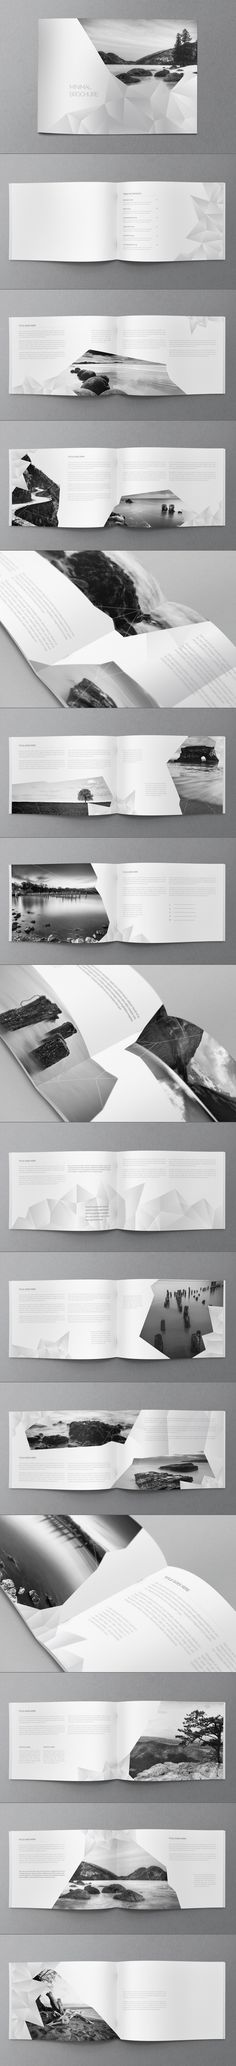 White Minimal Brochure. Download here: http://graphicriver.net/item/white-minimal-brochure/8285896?ref=abradesign #design #brochure